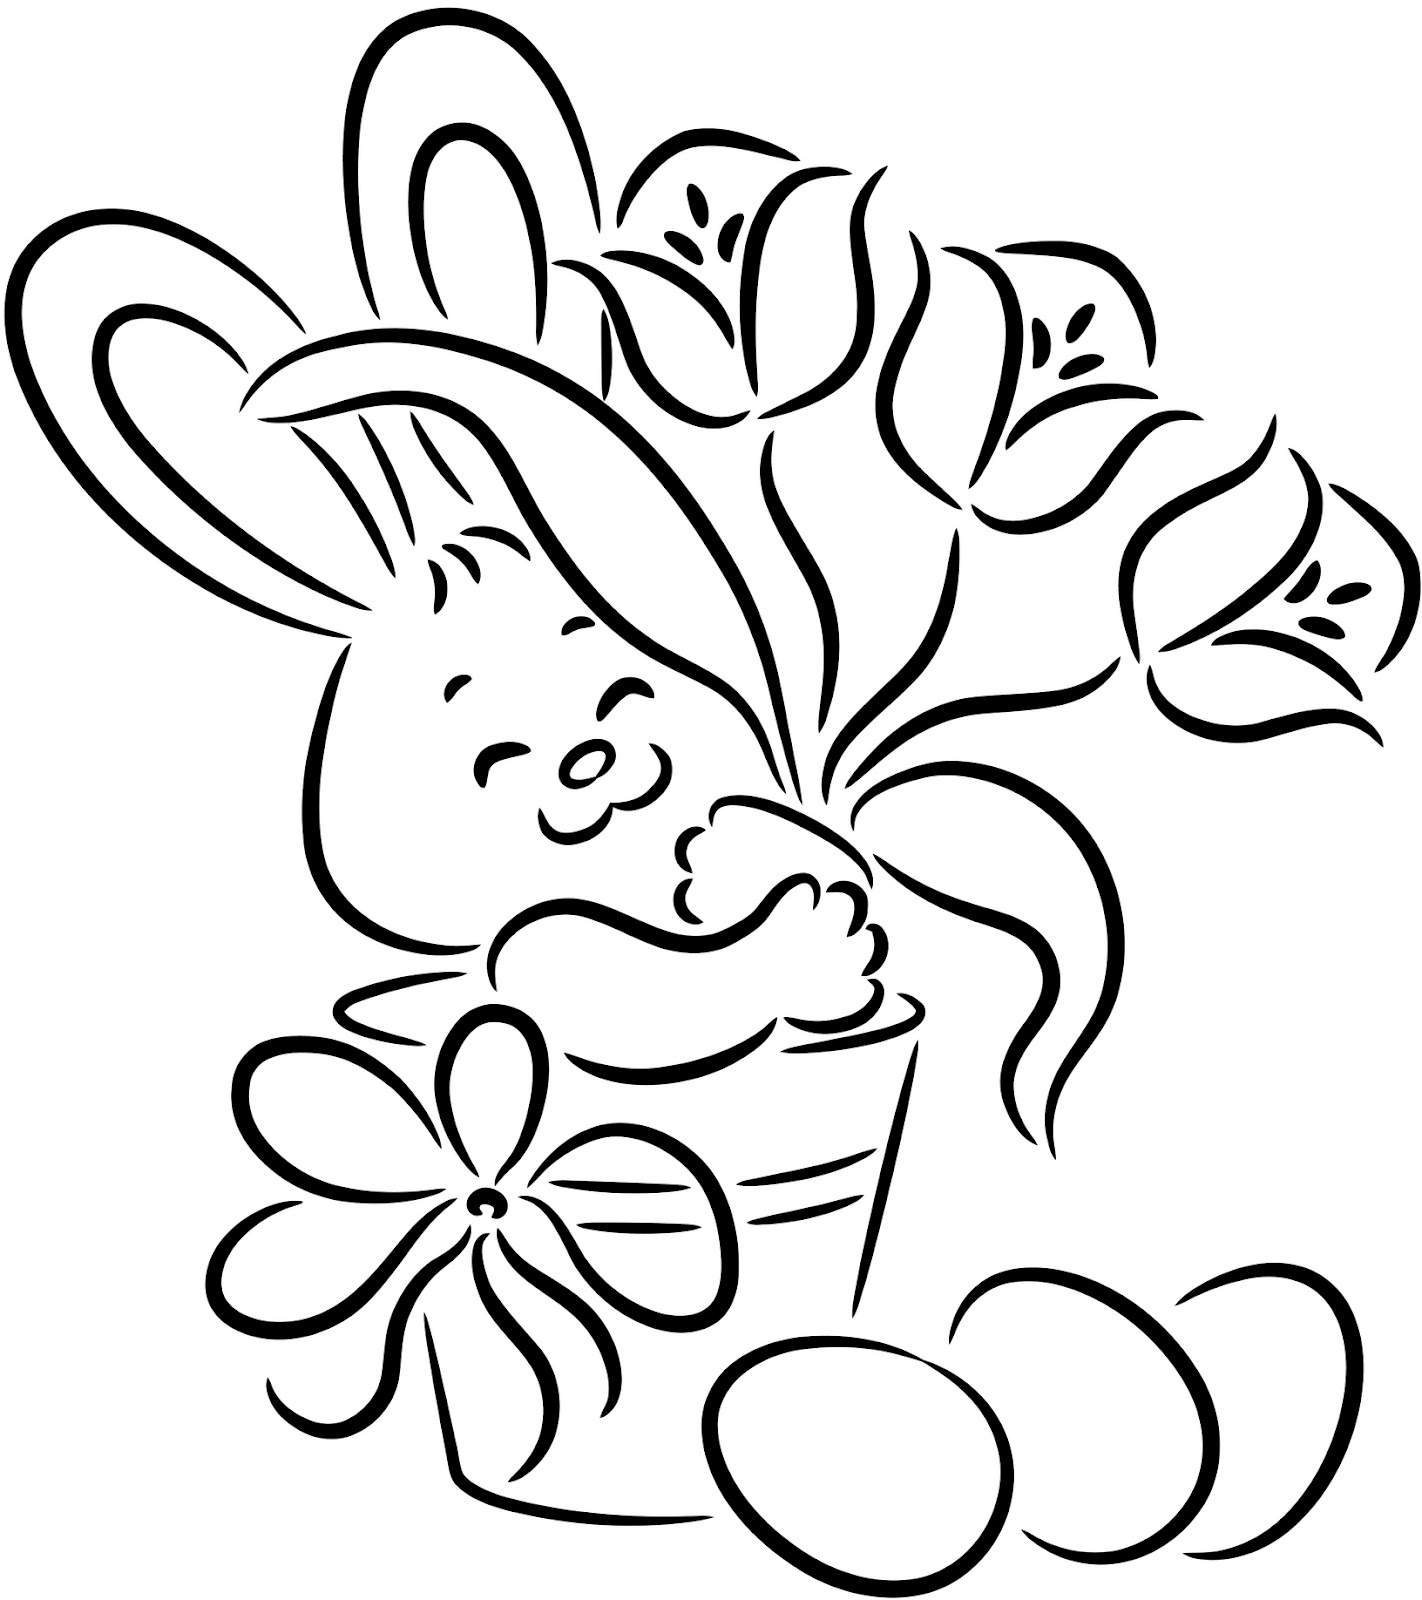 easter coloring sheets 15 printable easter coloring pages holiday vault easter sheets coloring